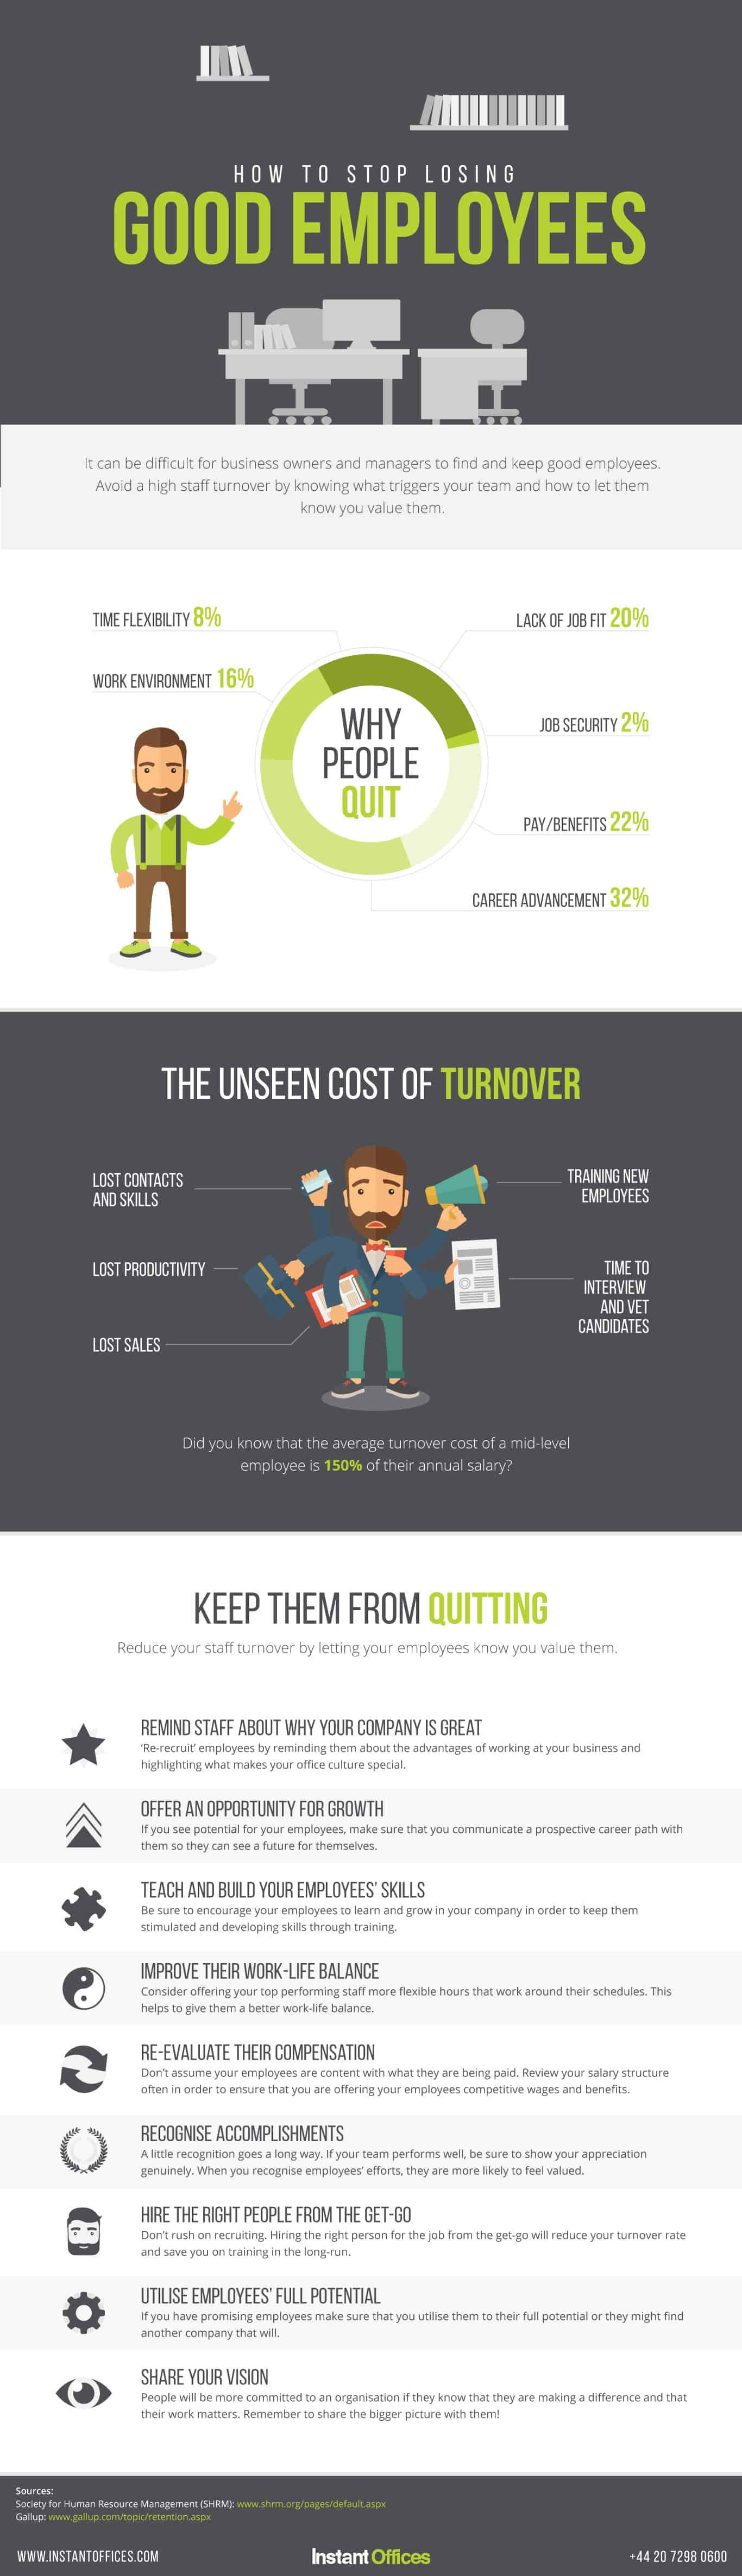 9 Ways to Avoid Losing Good Employees – An Infographic